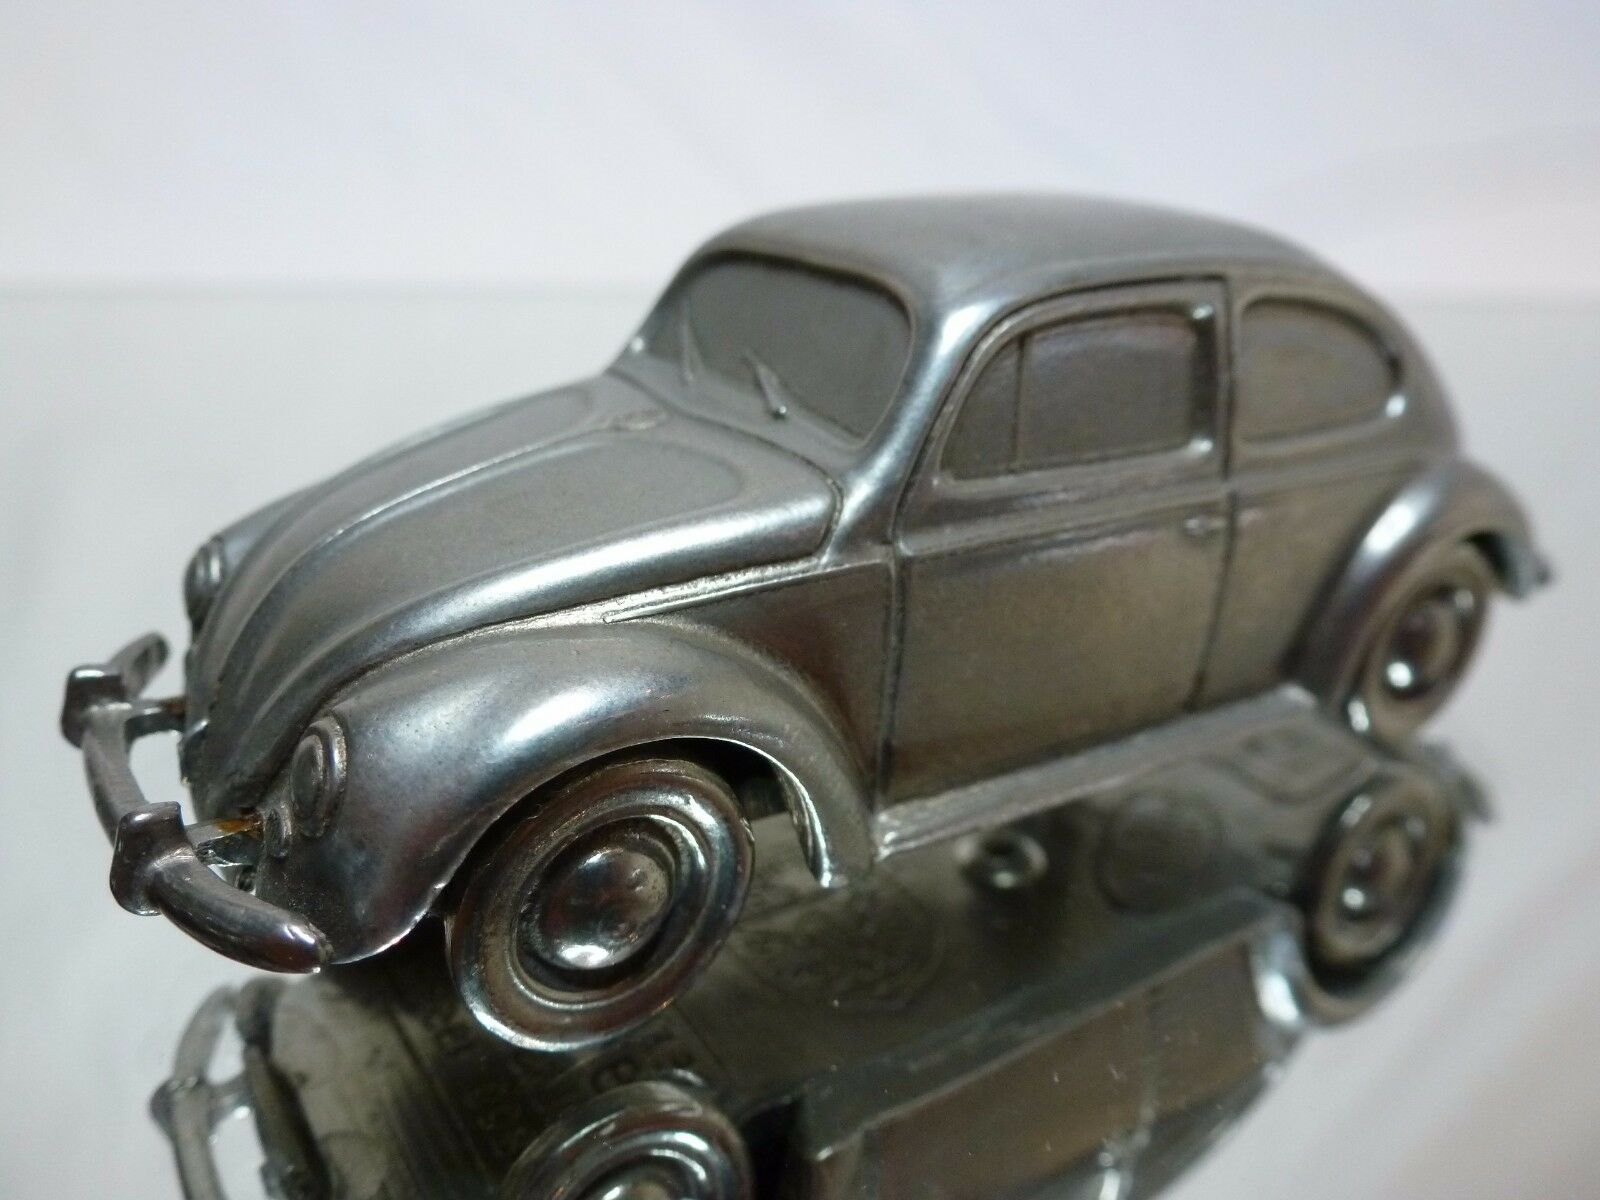 TIN METAL FRANCE VW VOLKSWAGEN BEETLE 1200 1953 OVAL - 1 43 - EXTREMELY RARE